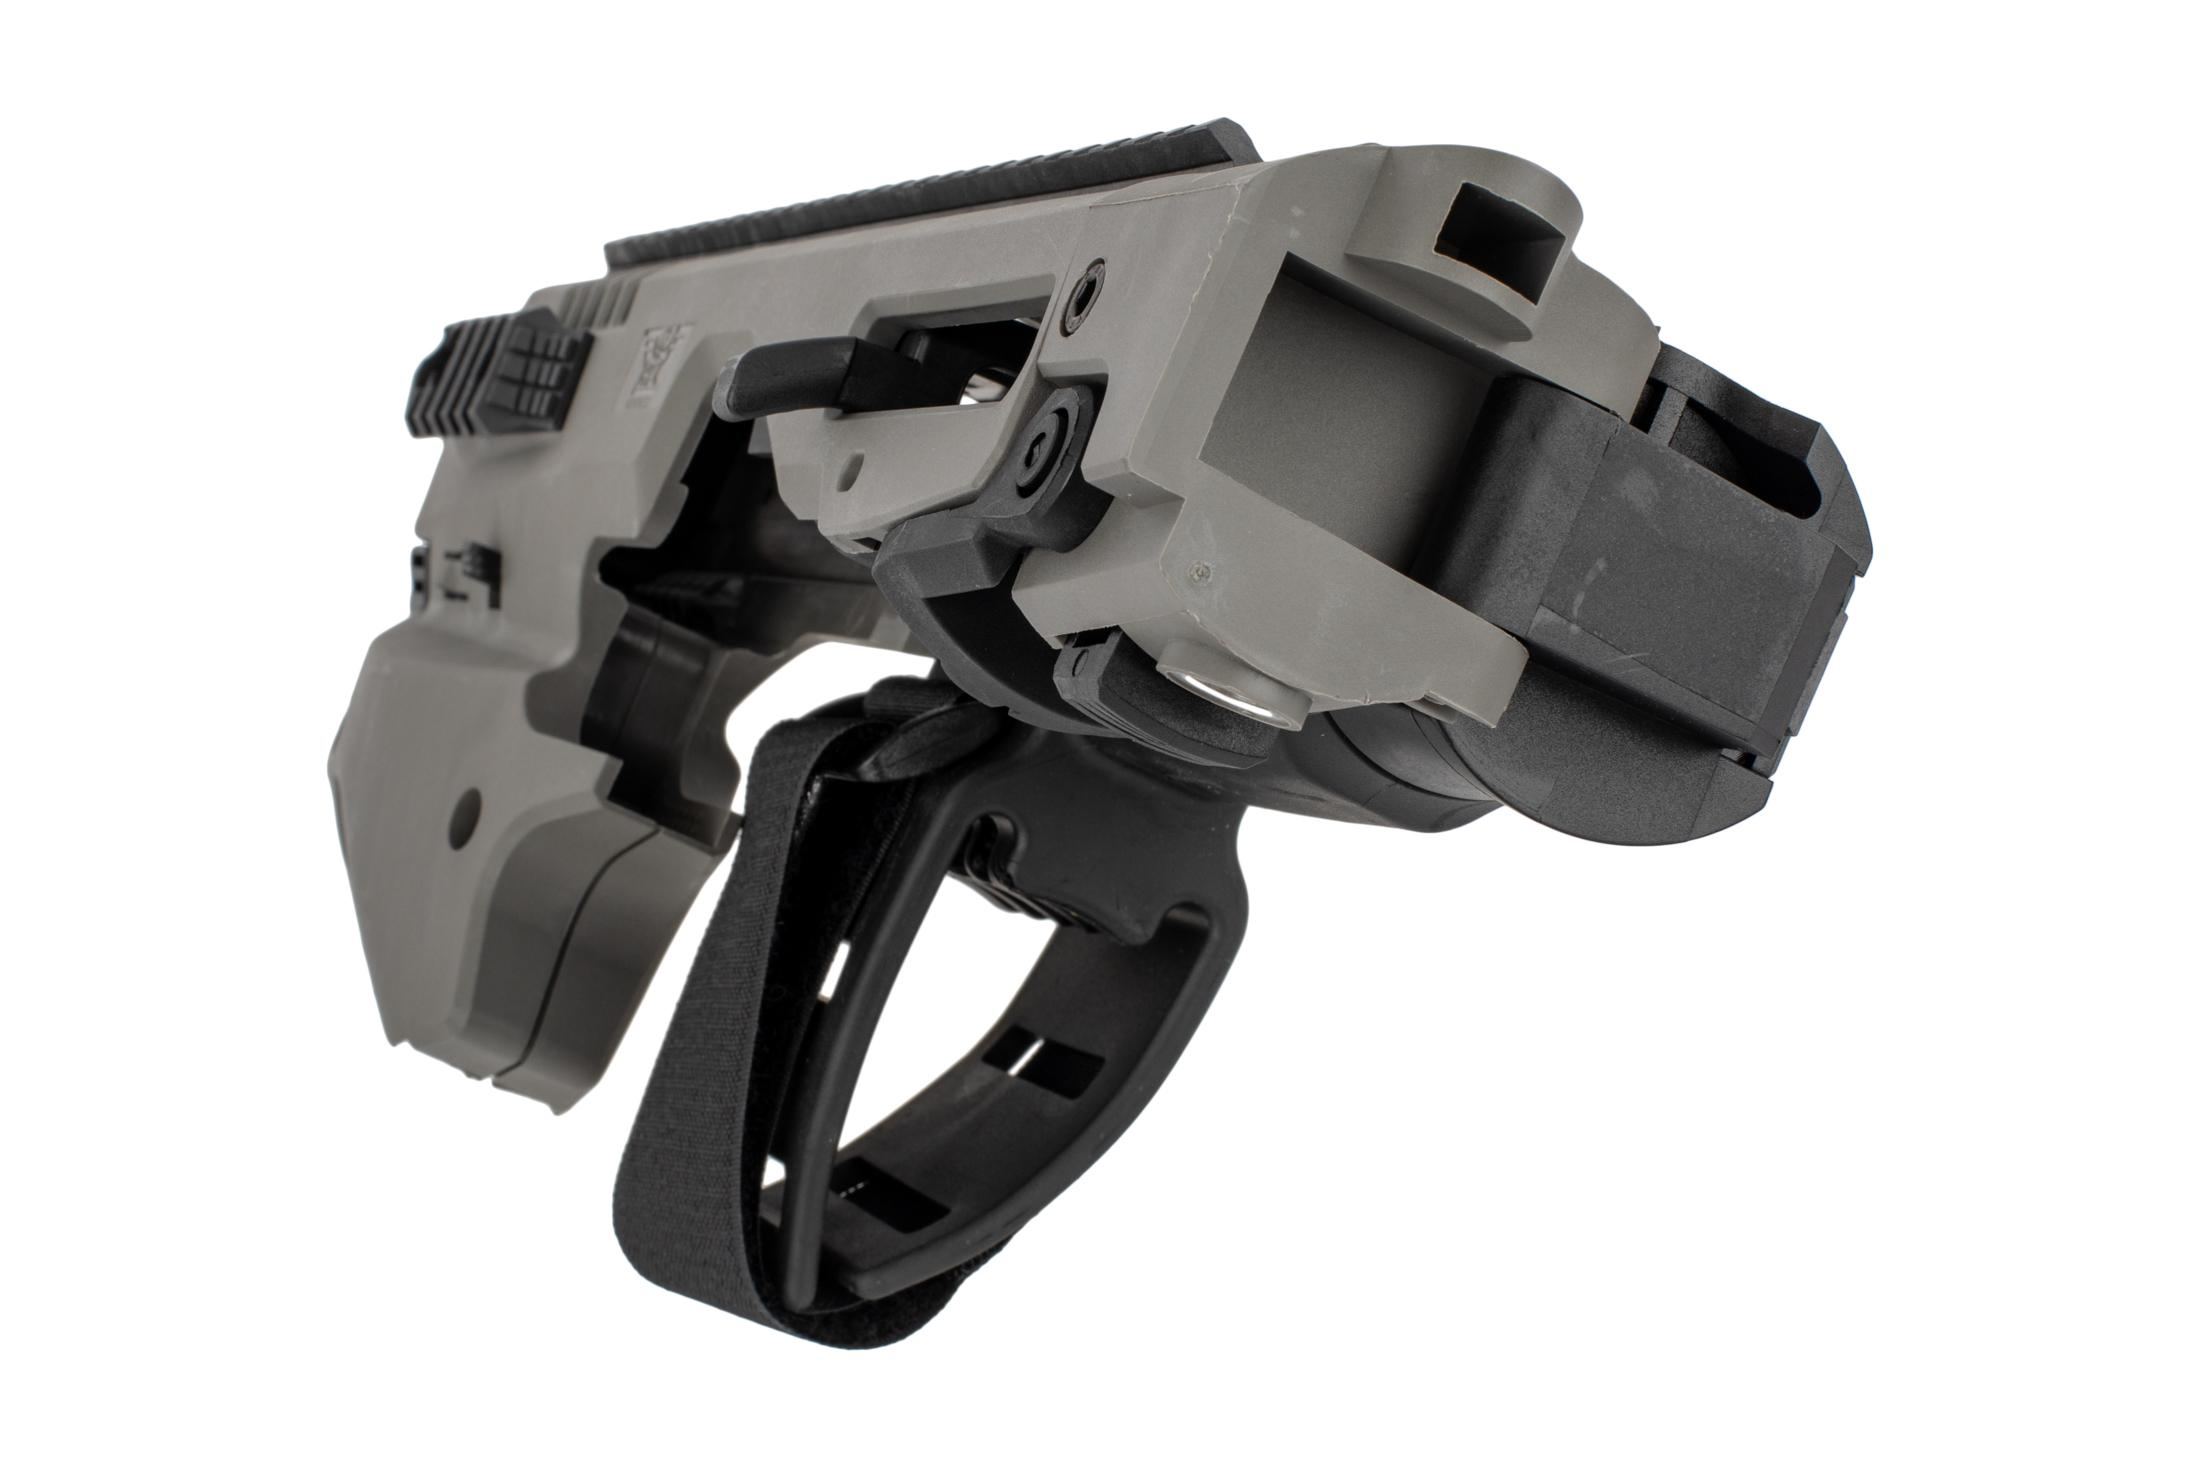 Command Arms Micro Conversion Kit for S&W M&Ps offers a side folding long stabilizer in tungsten grey